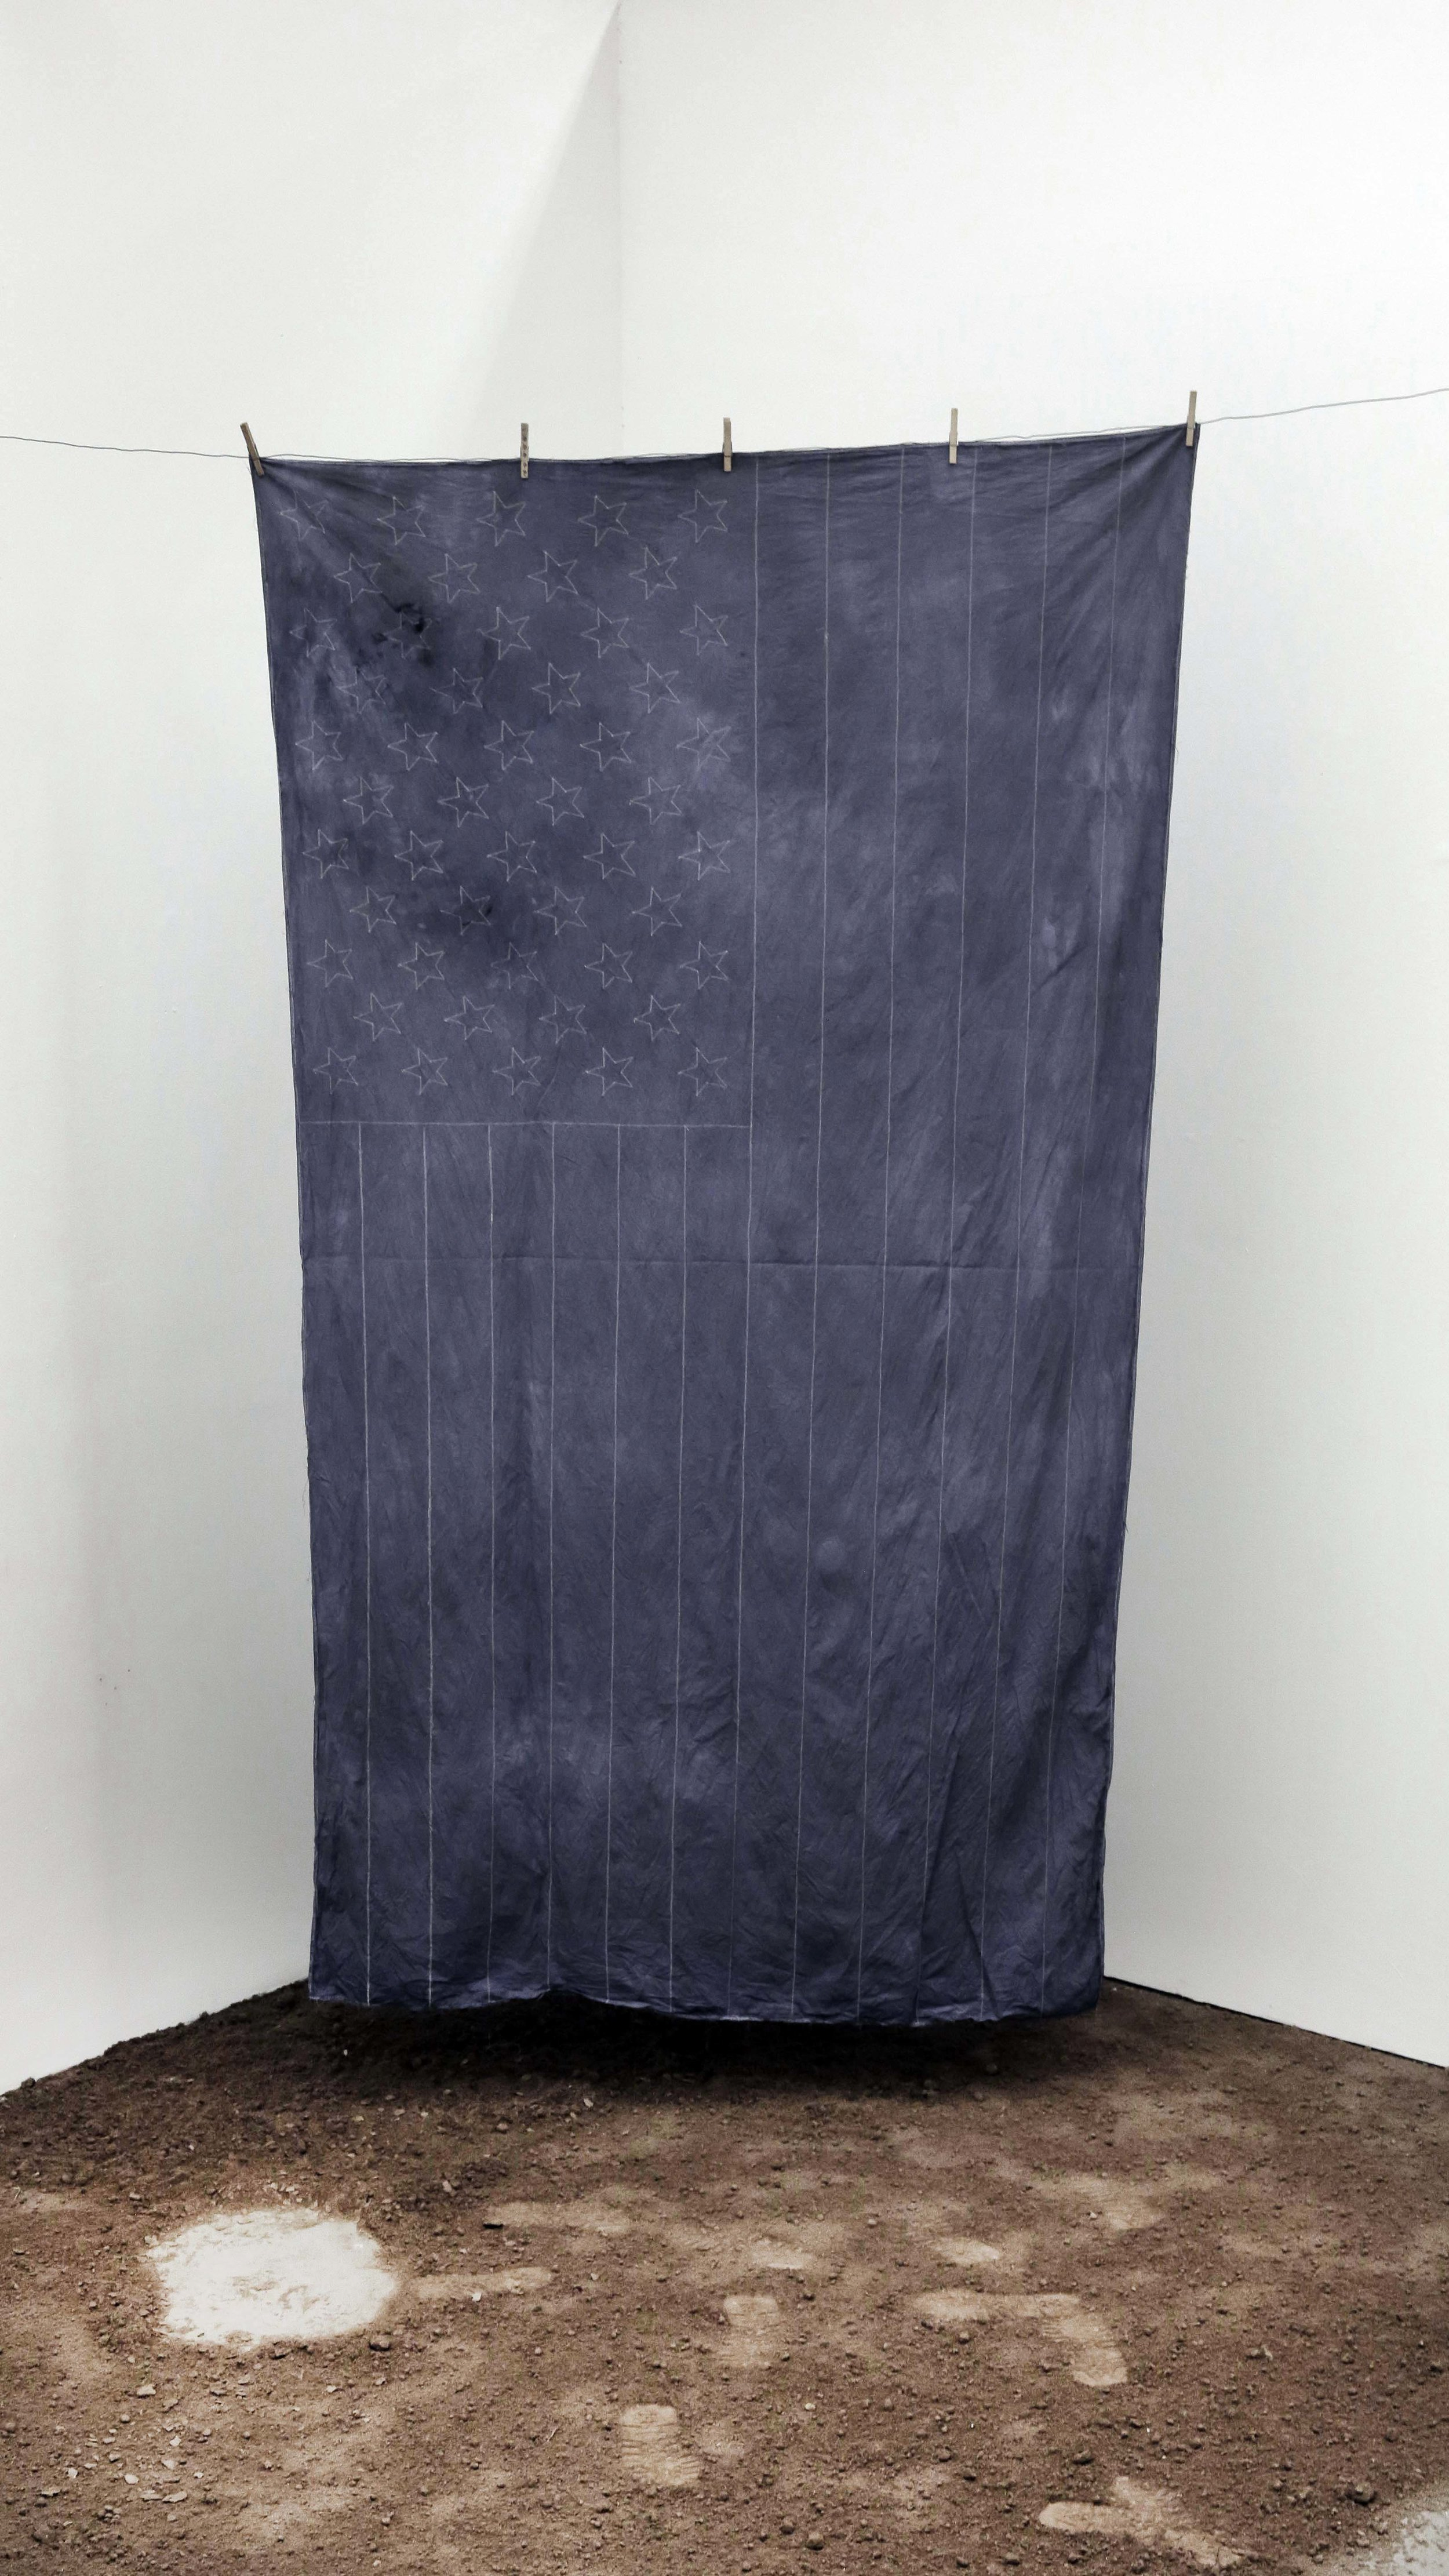 Ariel Jackson,  All I See Is Blue , 2017. Top layer soil from the Bronx, muslin fabric, blue dye, clothespins, wire polyester thread, 72 x 108 inches.